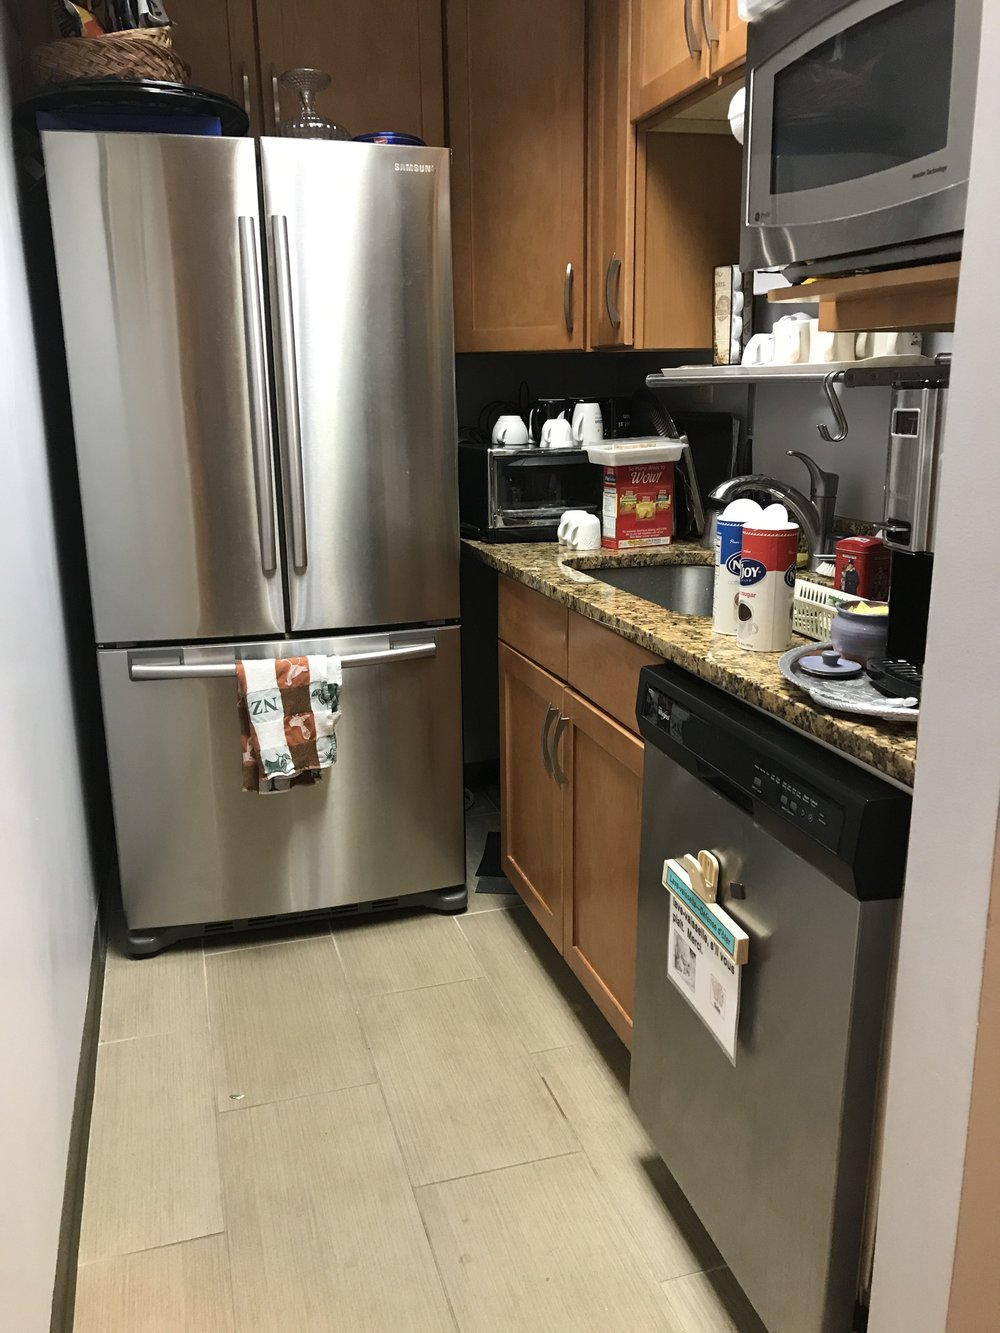 Our previous kitchen (before remodel)